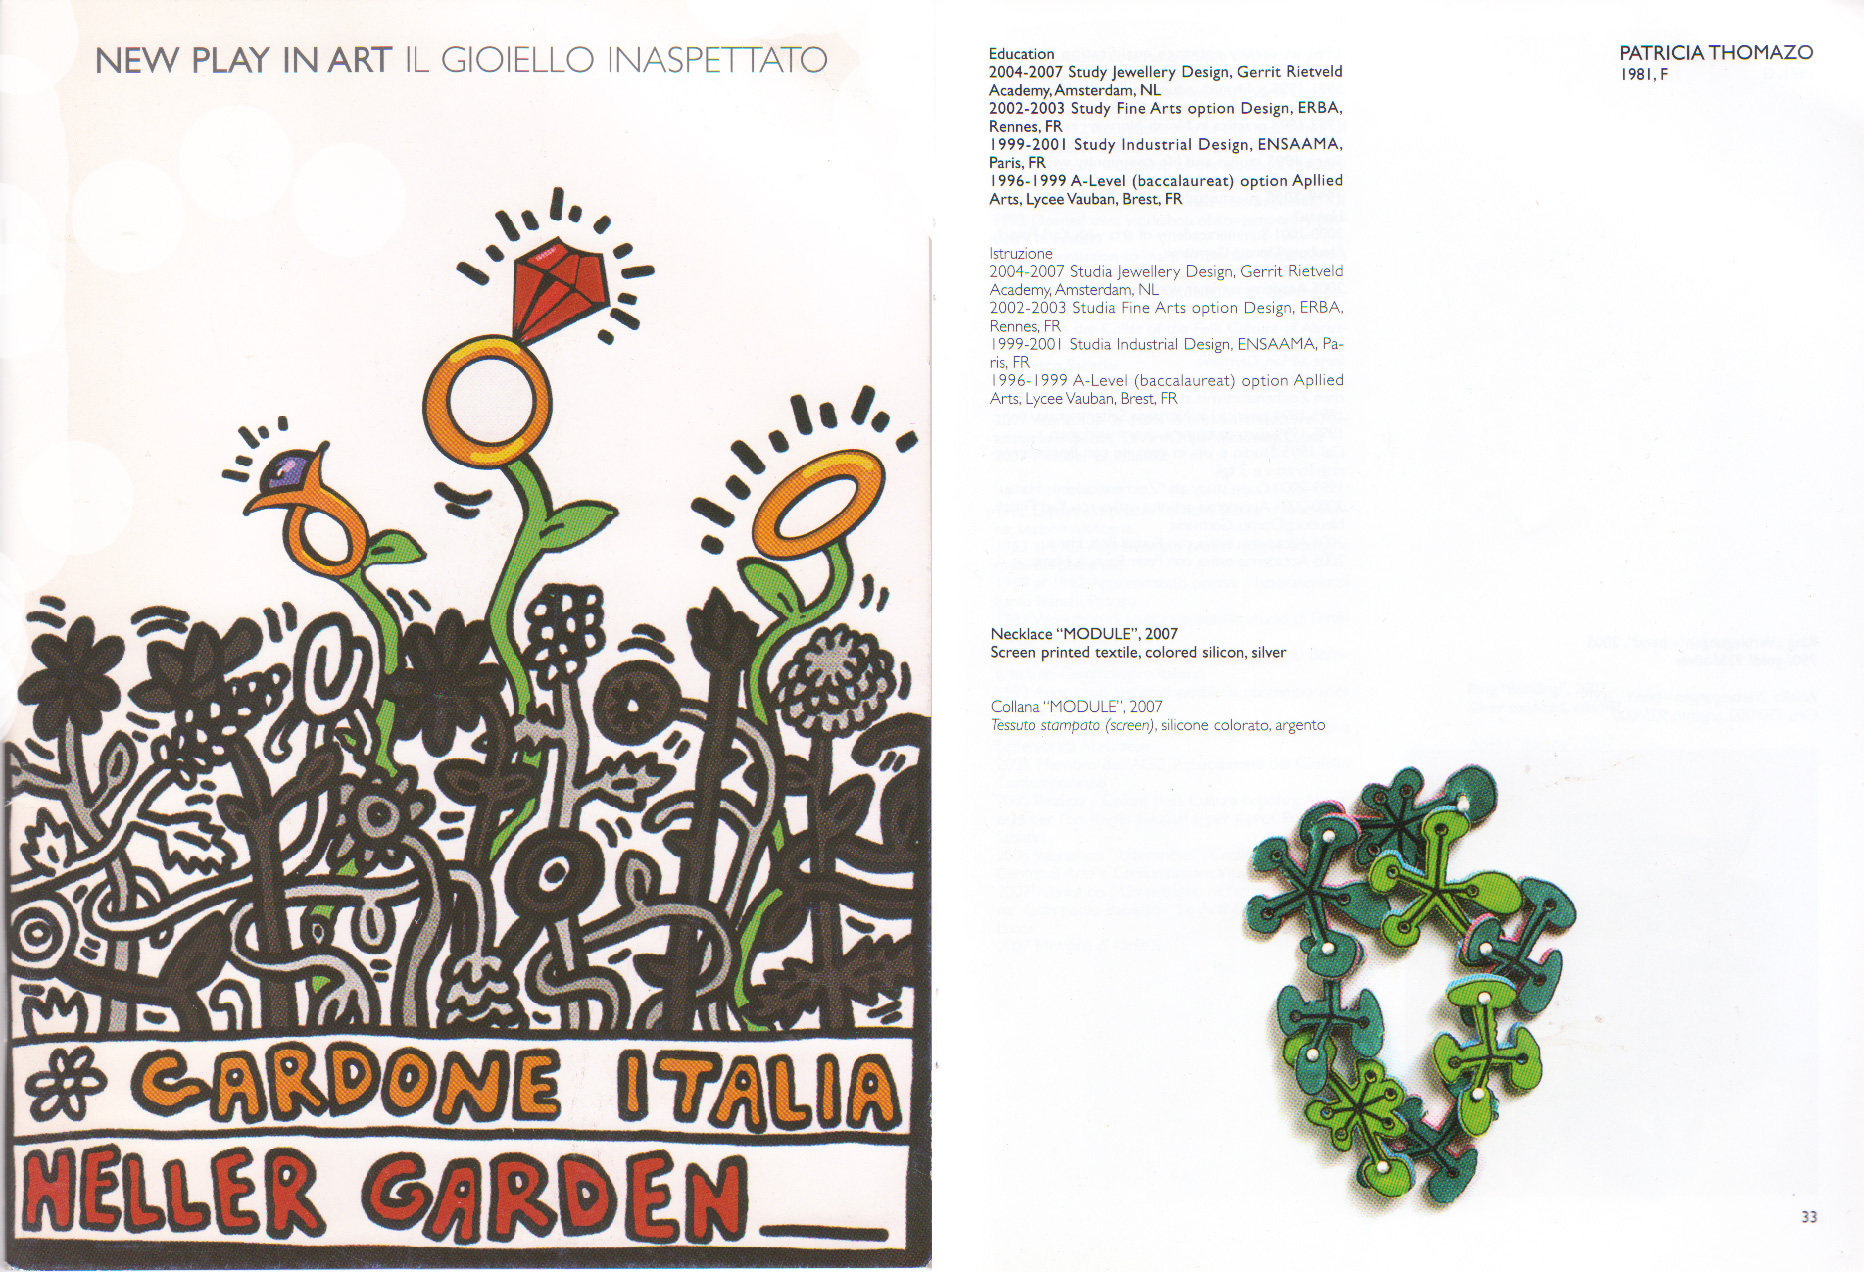 catalogue extract of the exibition new play of art at the Heller botanical garden in Italy in 2008